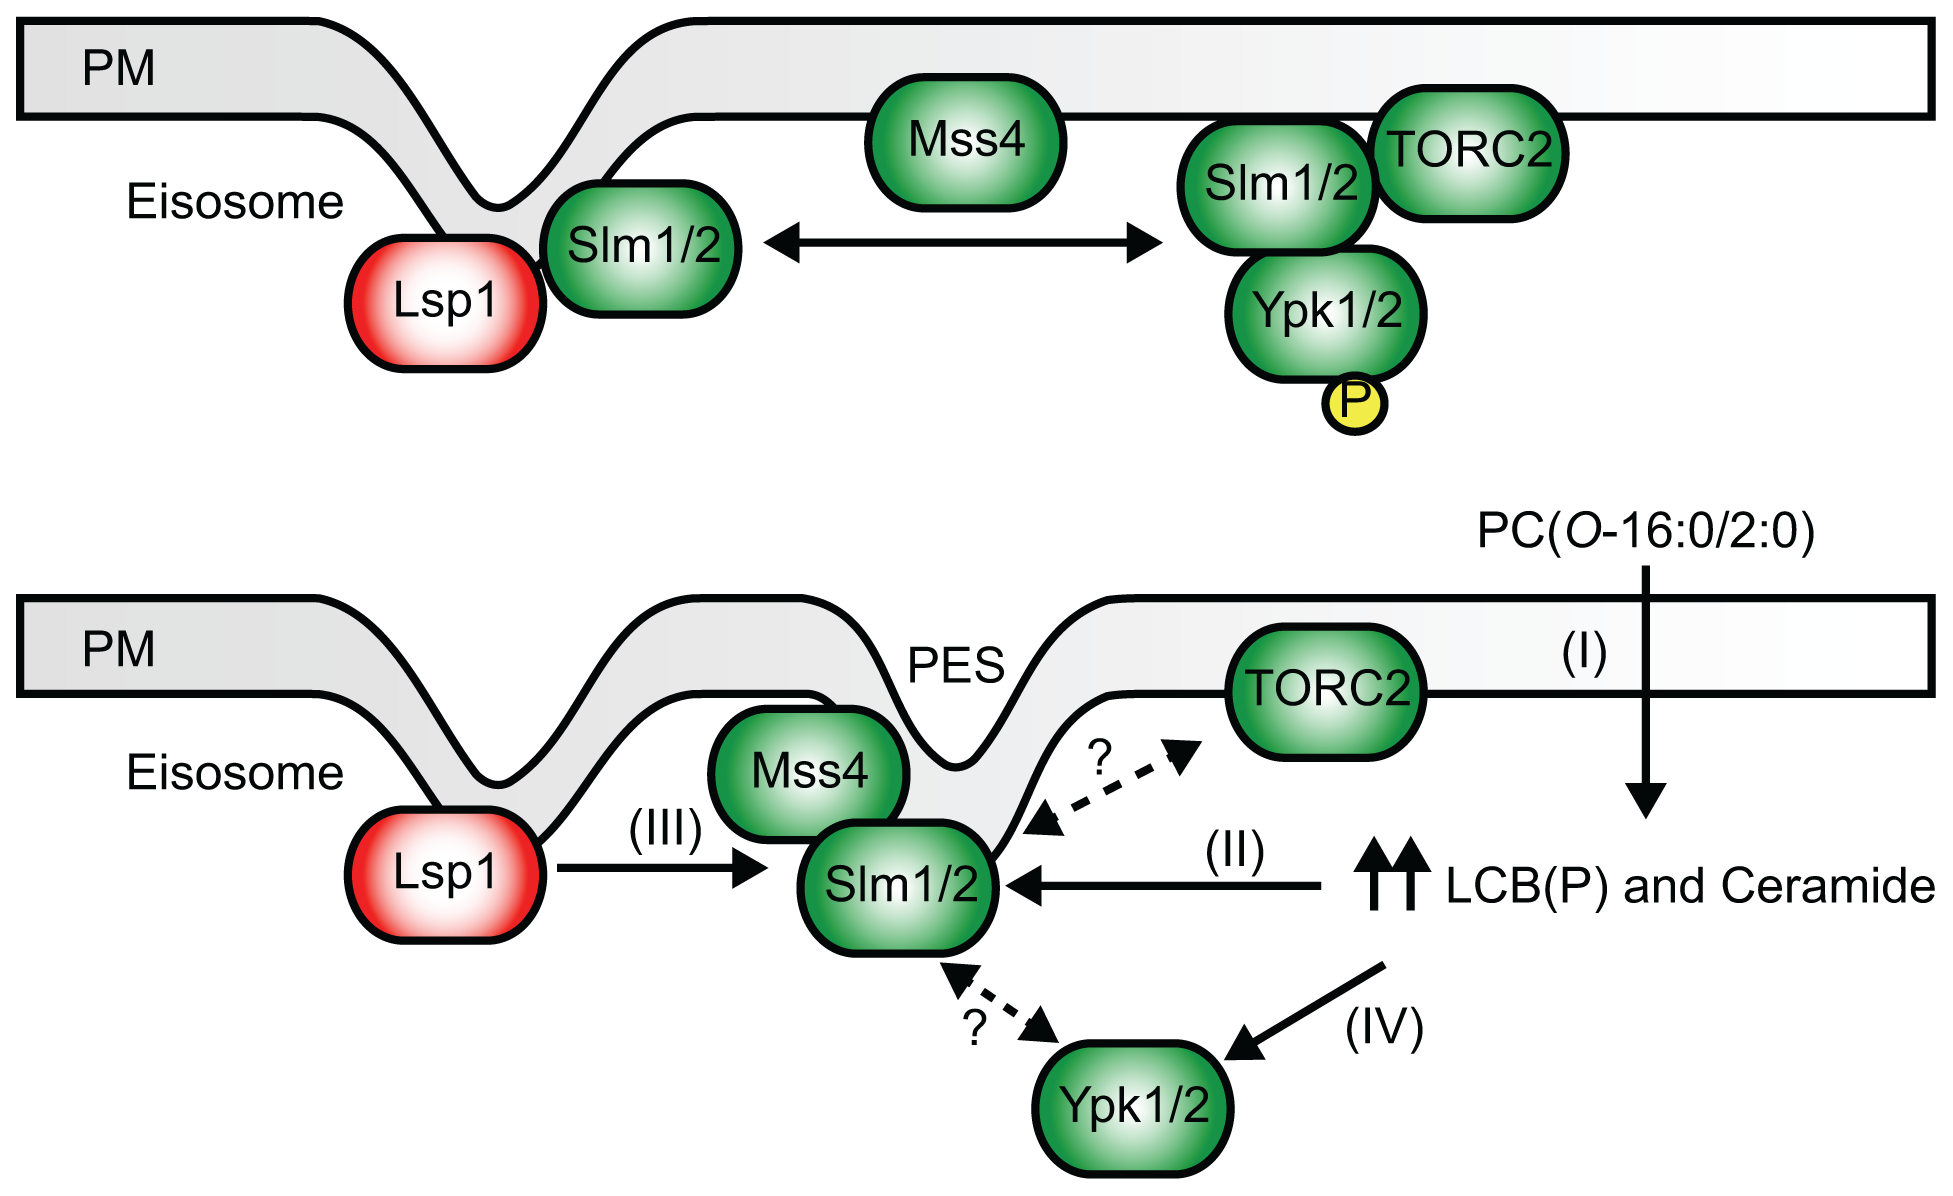 A simplified model of the impact of PC(<i>O</i>-16:0/2:0) on PtdIns(4,5)P<sub>2</sub> and TOR signaling.